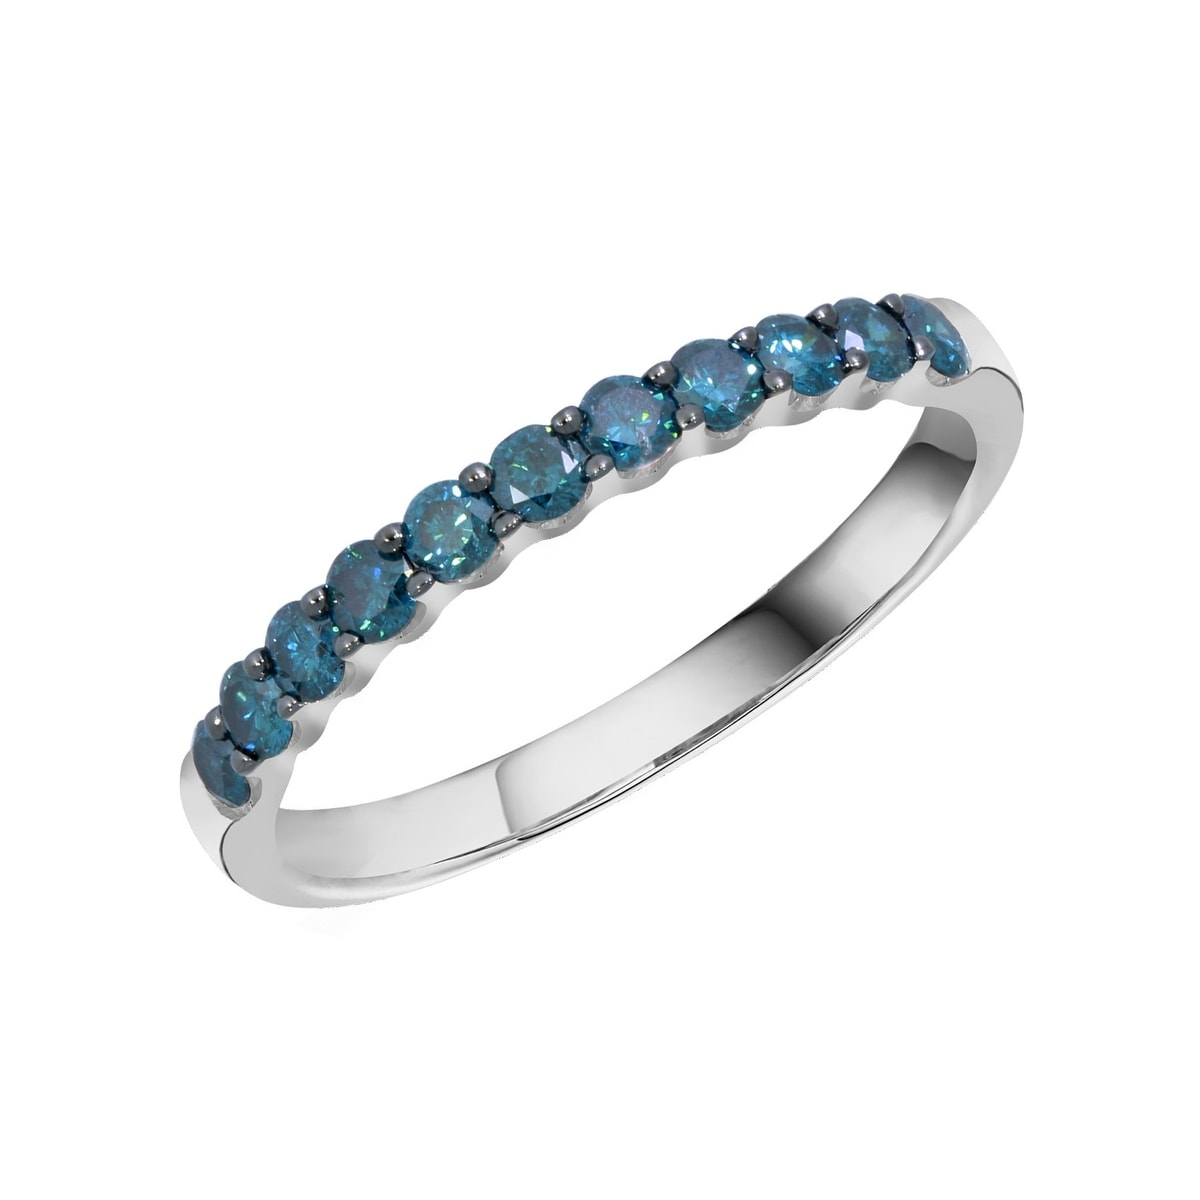 Prism Jewel 0.50CT Round 2.20MM Blue Color Diamond Wedding Band - Thumbnail 0